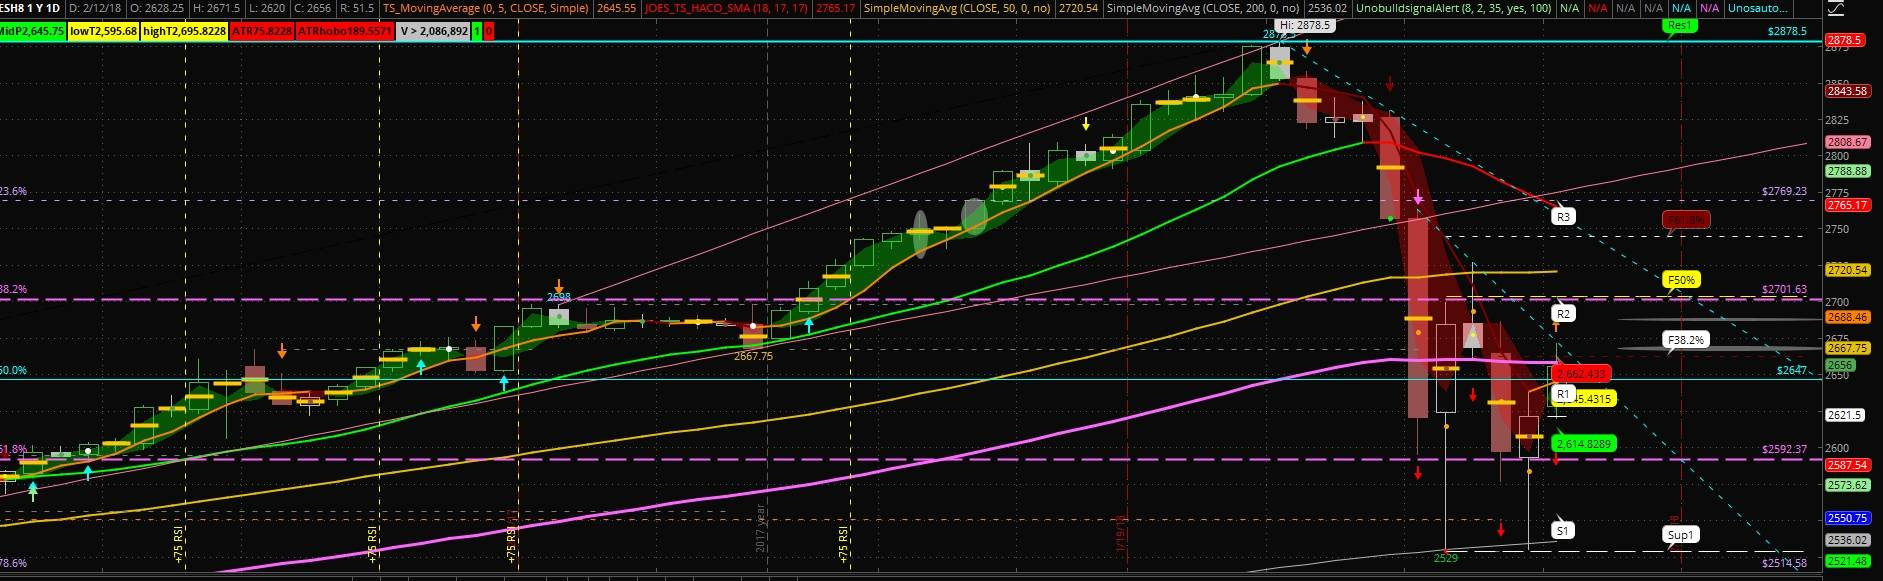 ES S&P 500 mini futures daily chart with studies